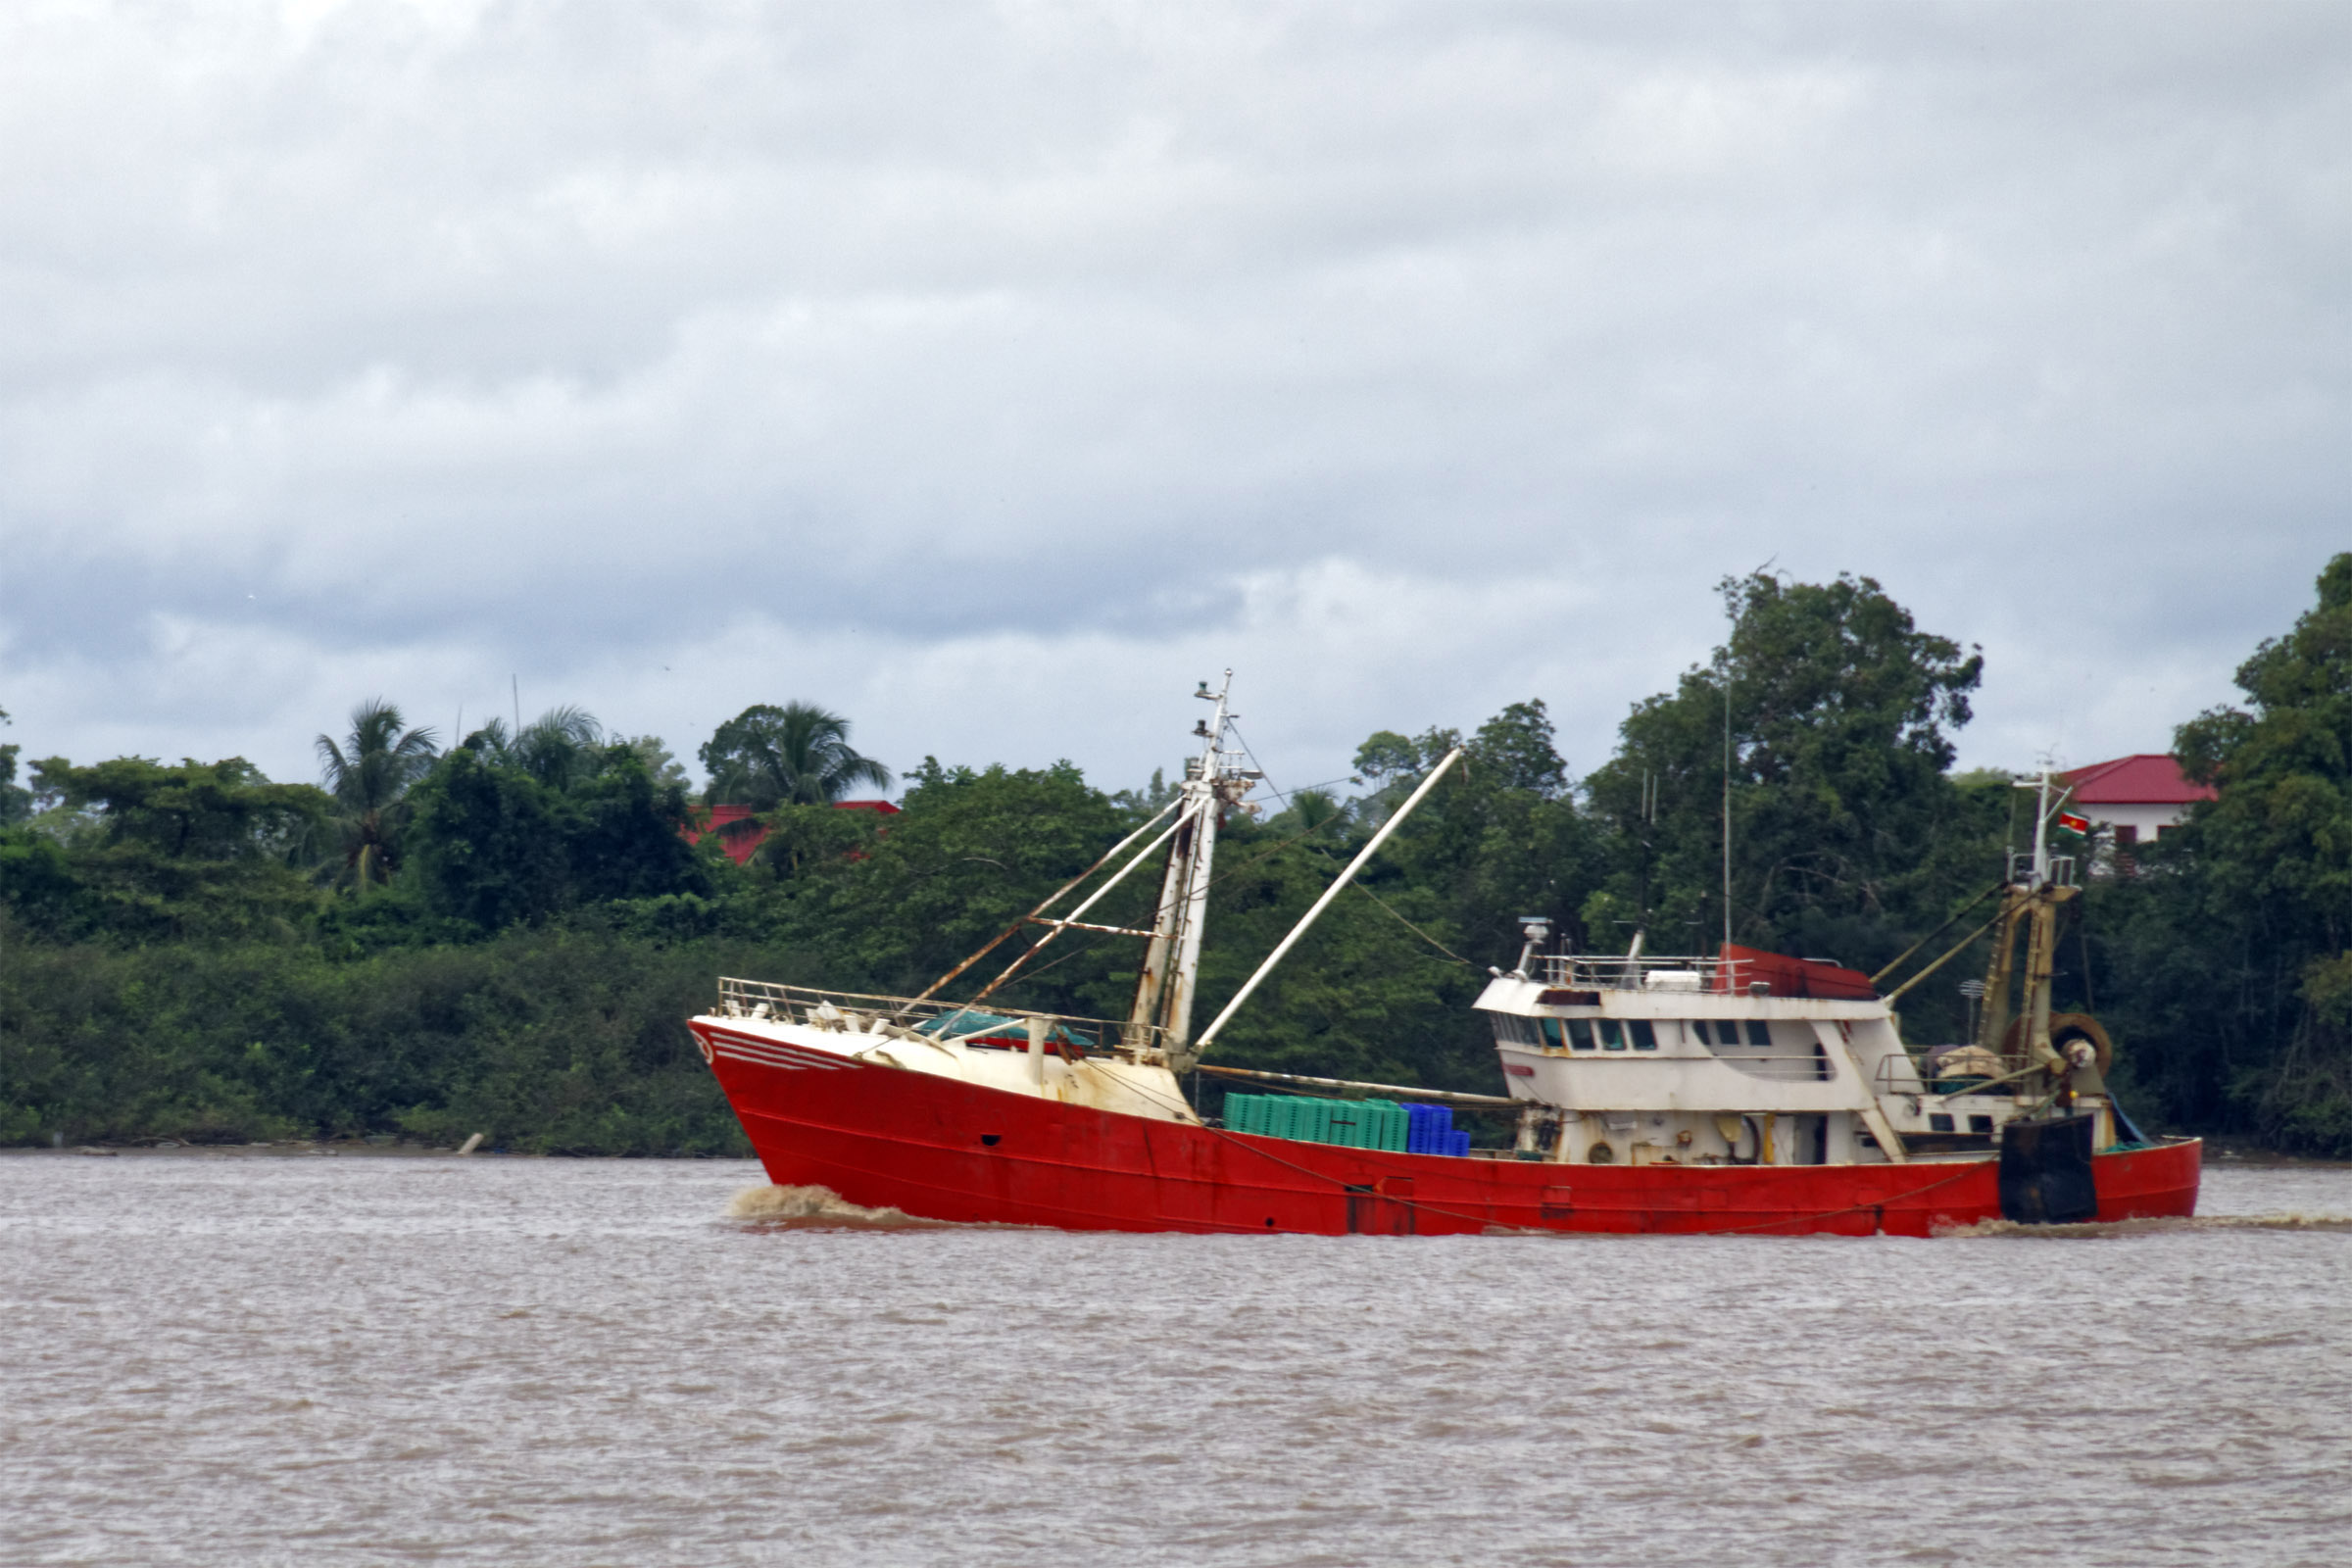 Fishing trawler, Backgrounds, Shipping, Water, Vessel, HQ Photo